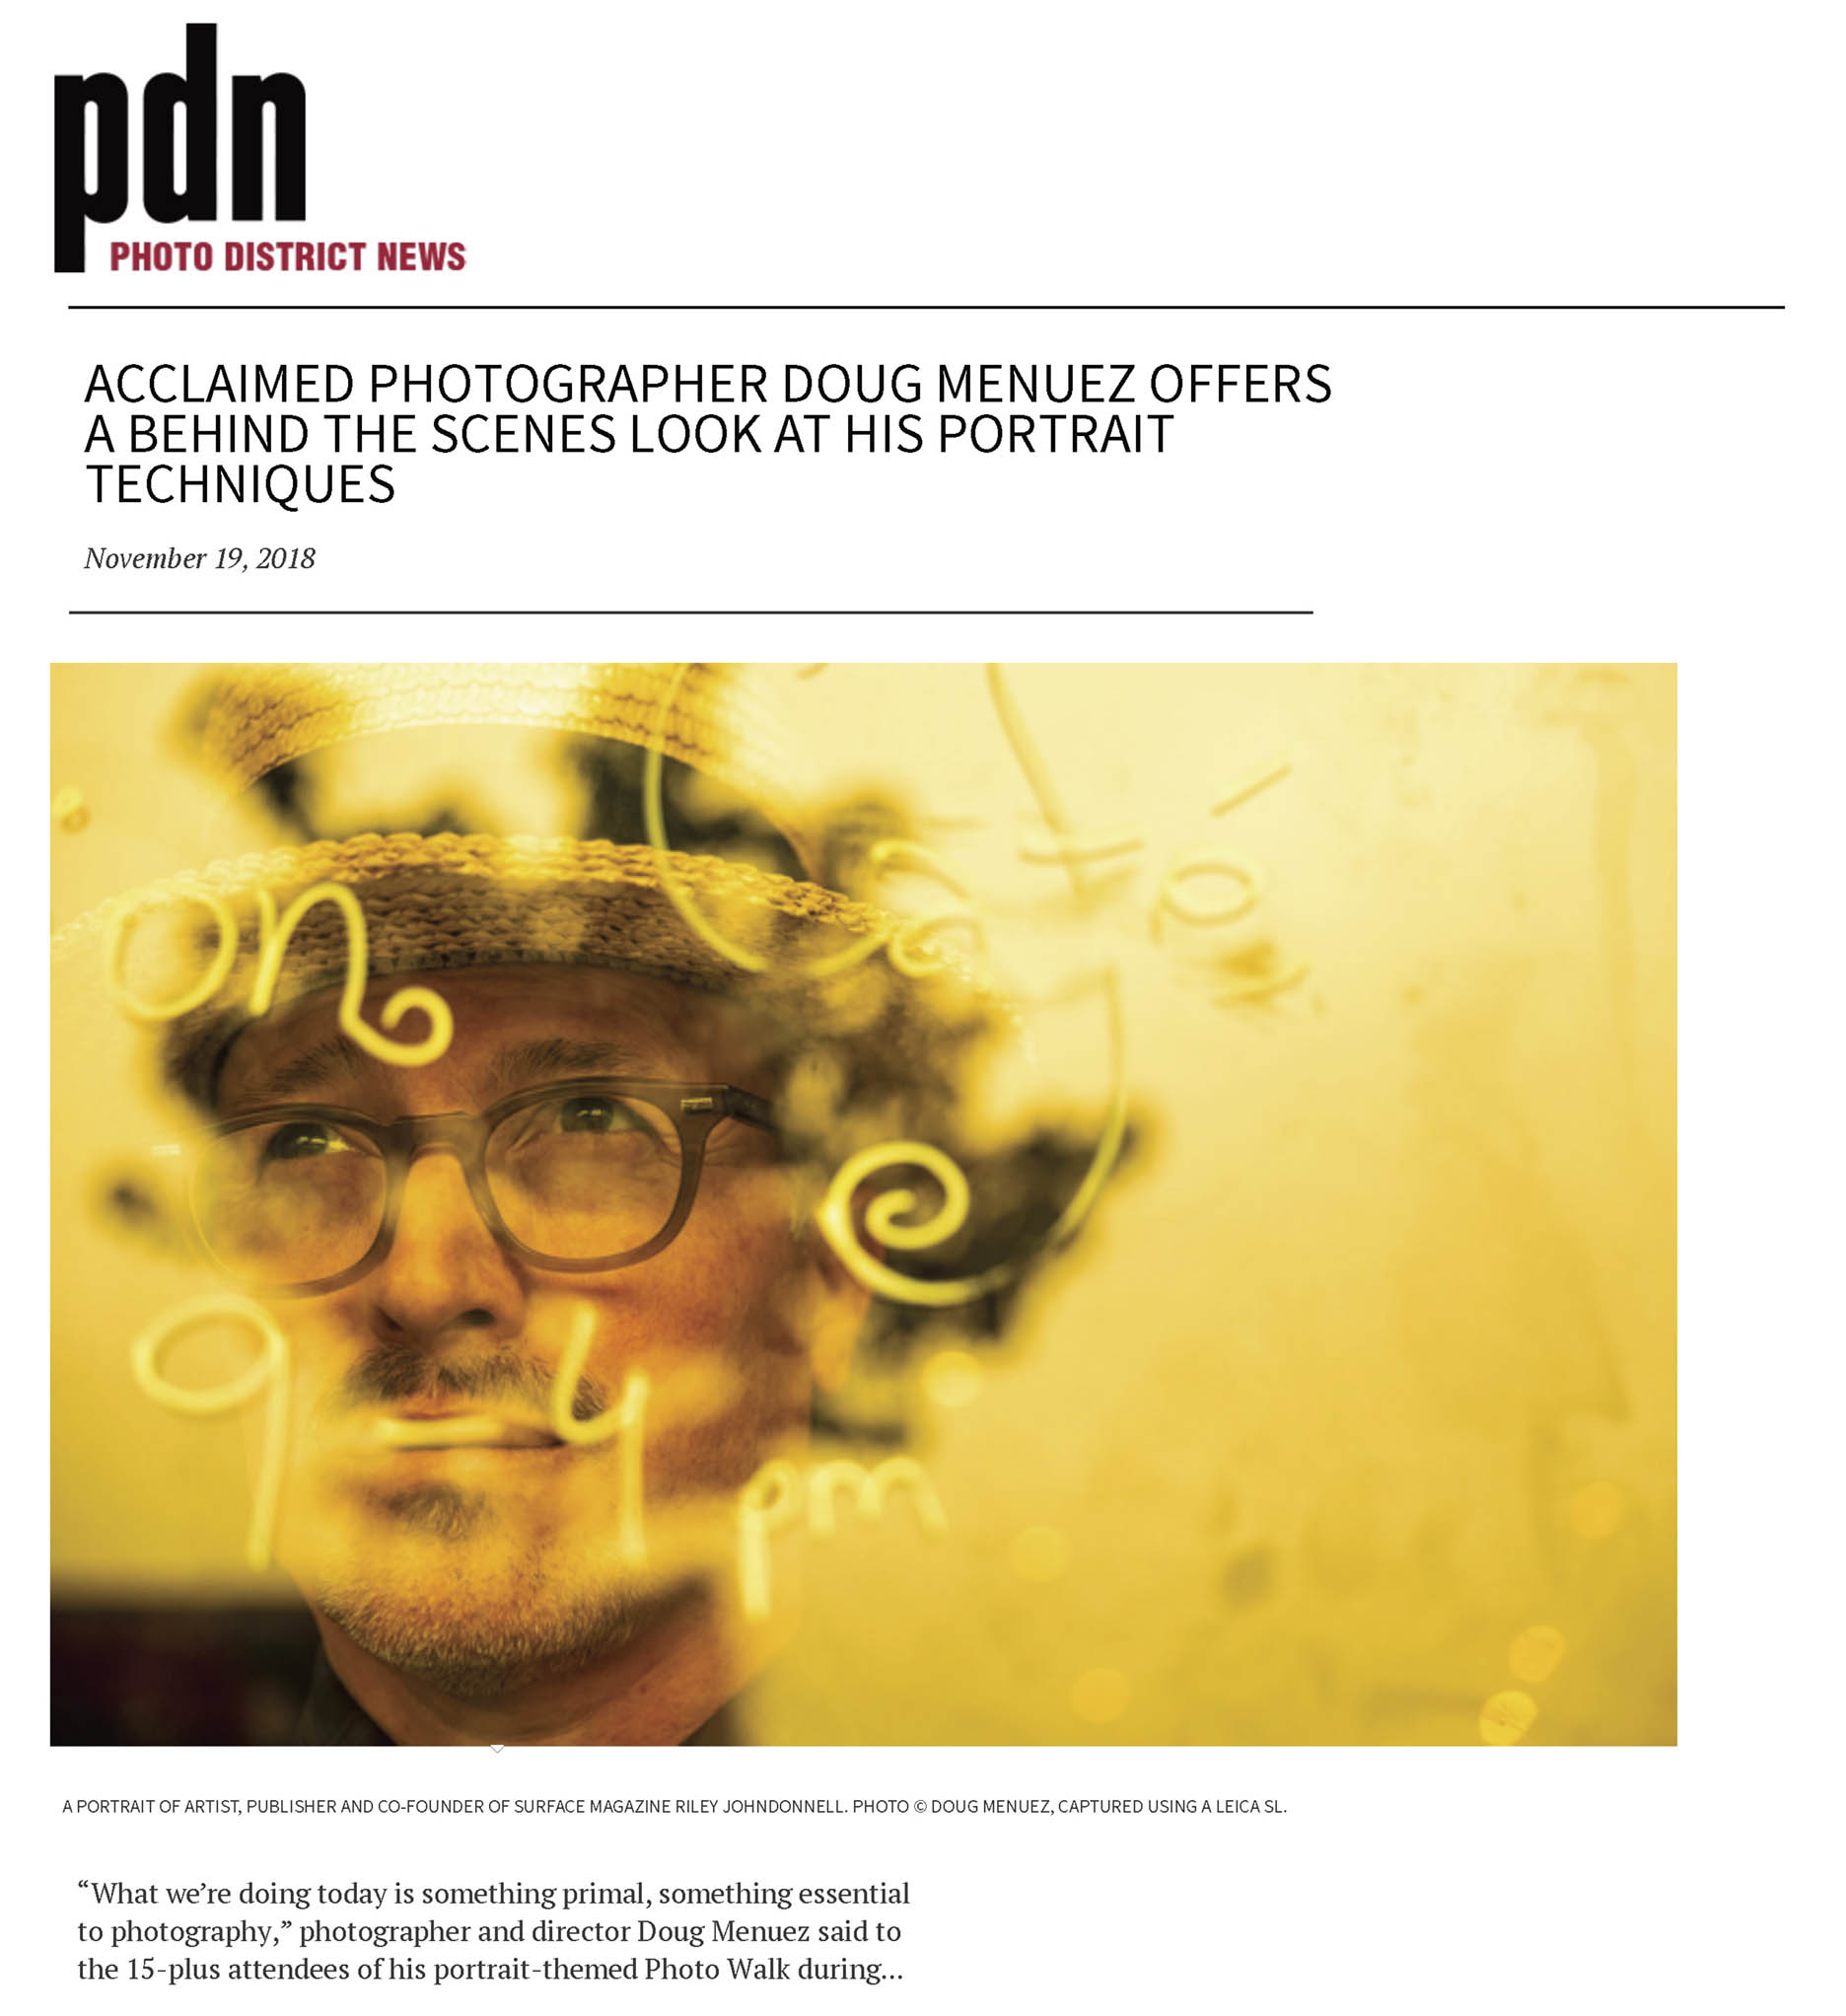 1 lo Acclaimed Photographer Doug Menuez Offers a Behind the Scenes Look at His Portrait Techniques   PDN Online_Page_1.jpg